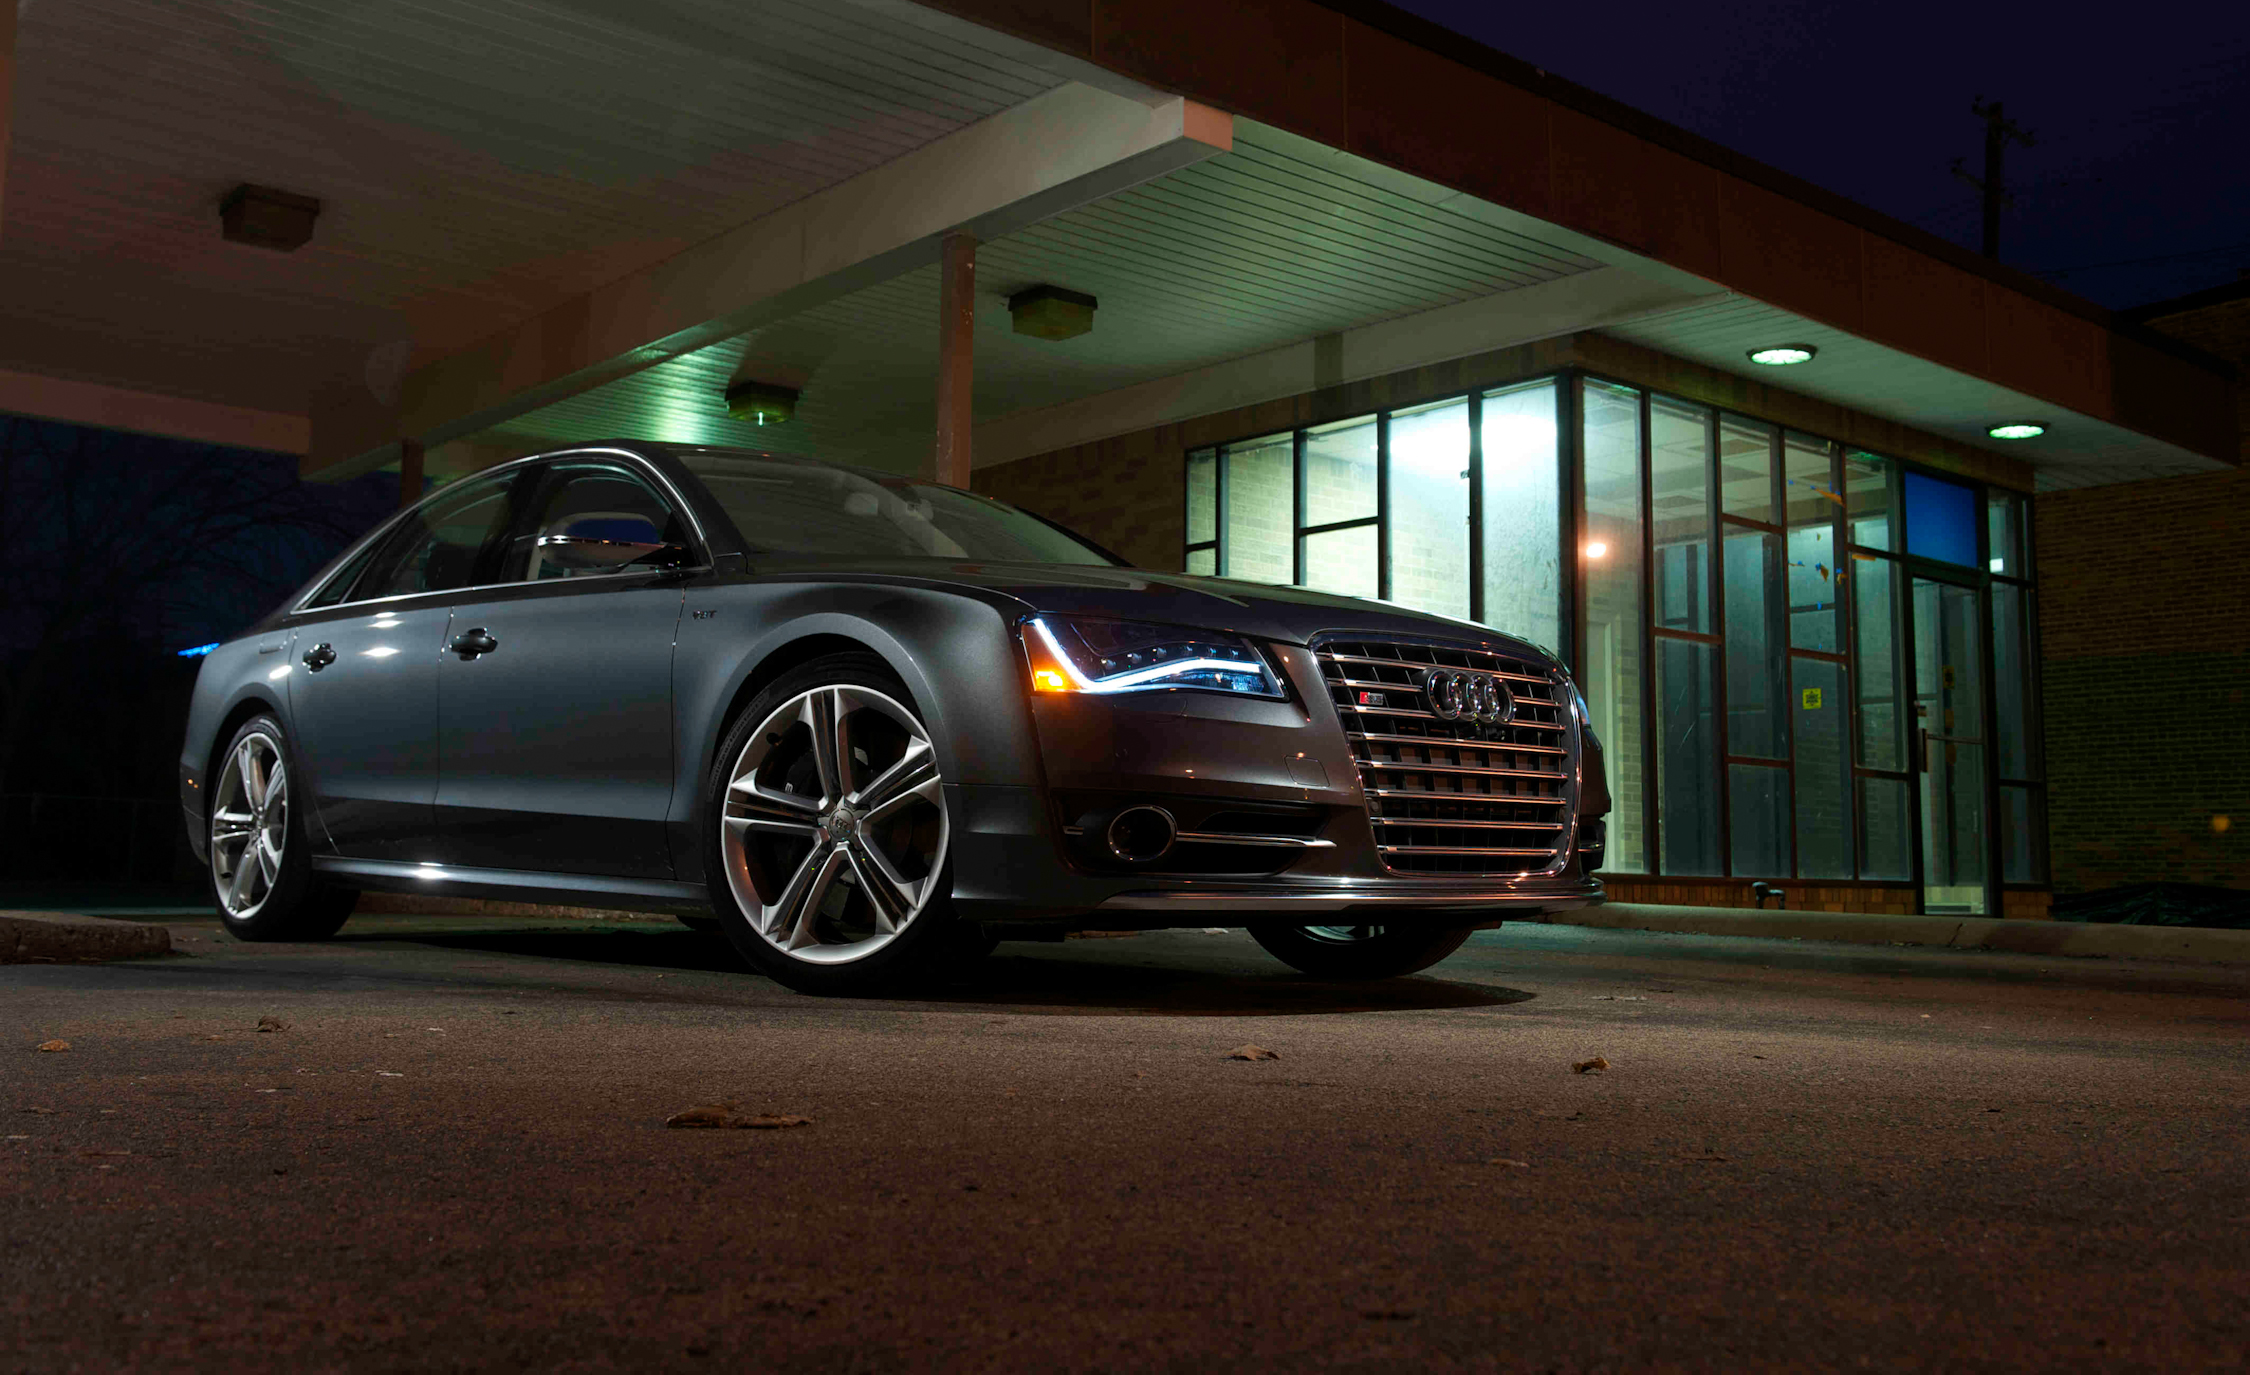 2013 Audi S8 Exterior Front And Side (View 24 of 25)